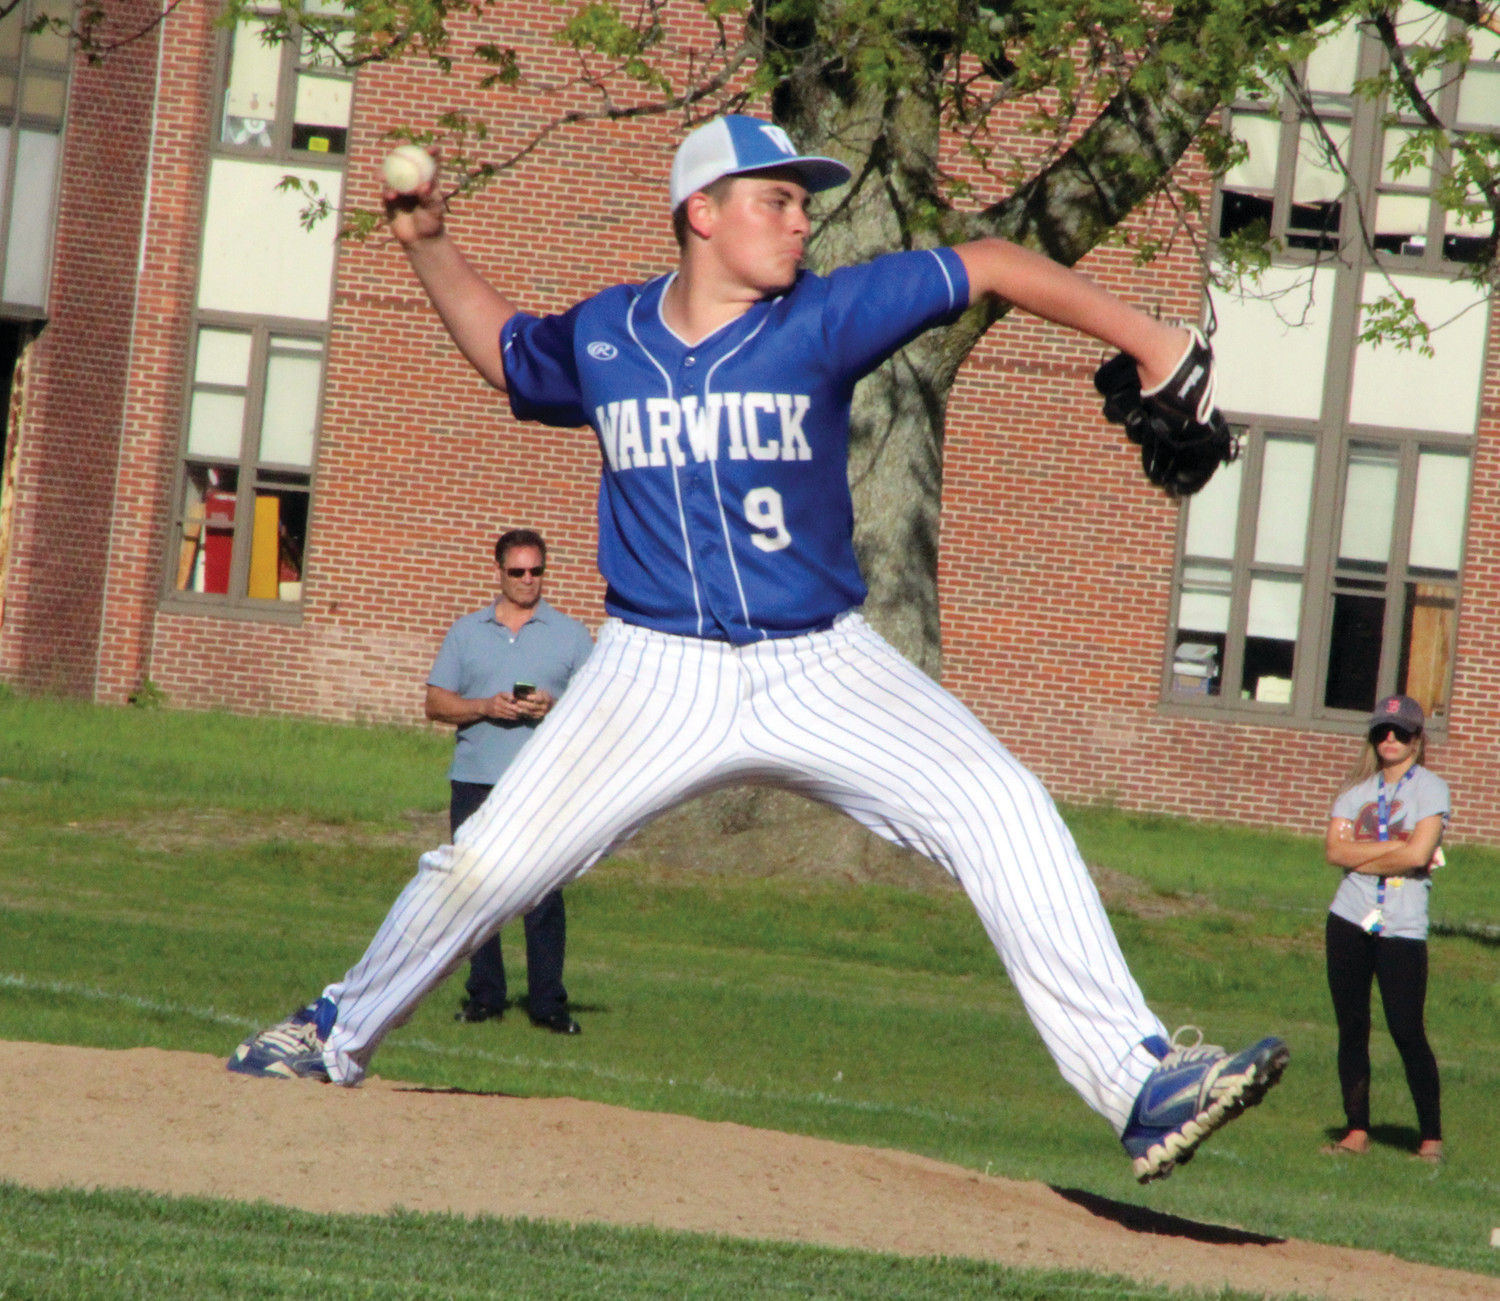 ON THE RUBBER: Vets' Sean Gallagher delivers a pitch against Immaculate Conception on Monday afternoon.